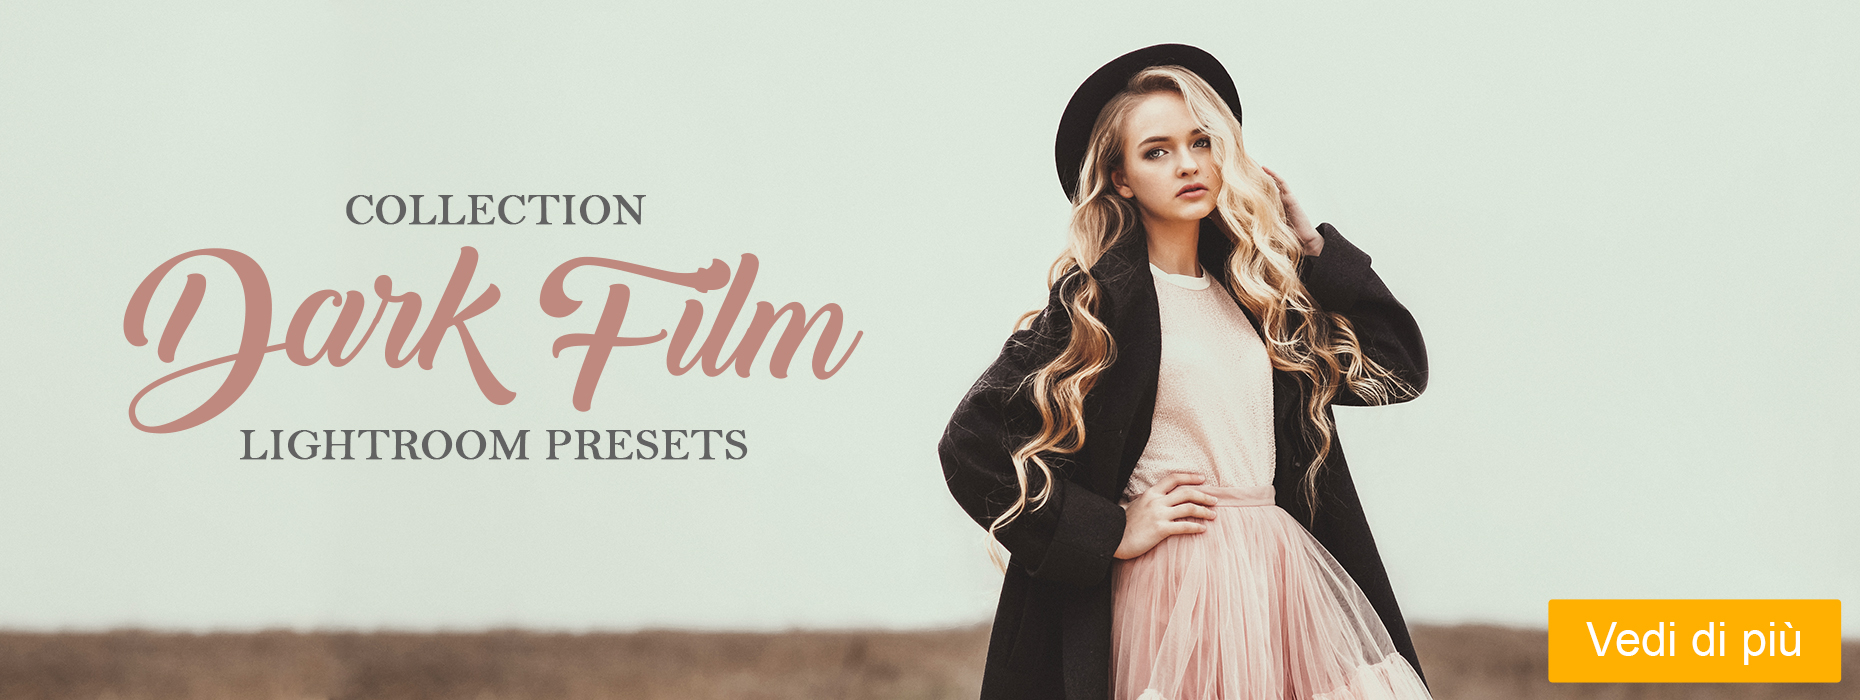 lightroom fuji gratis dark film cover